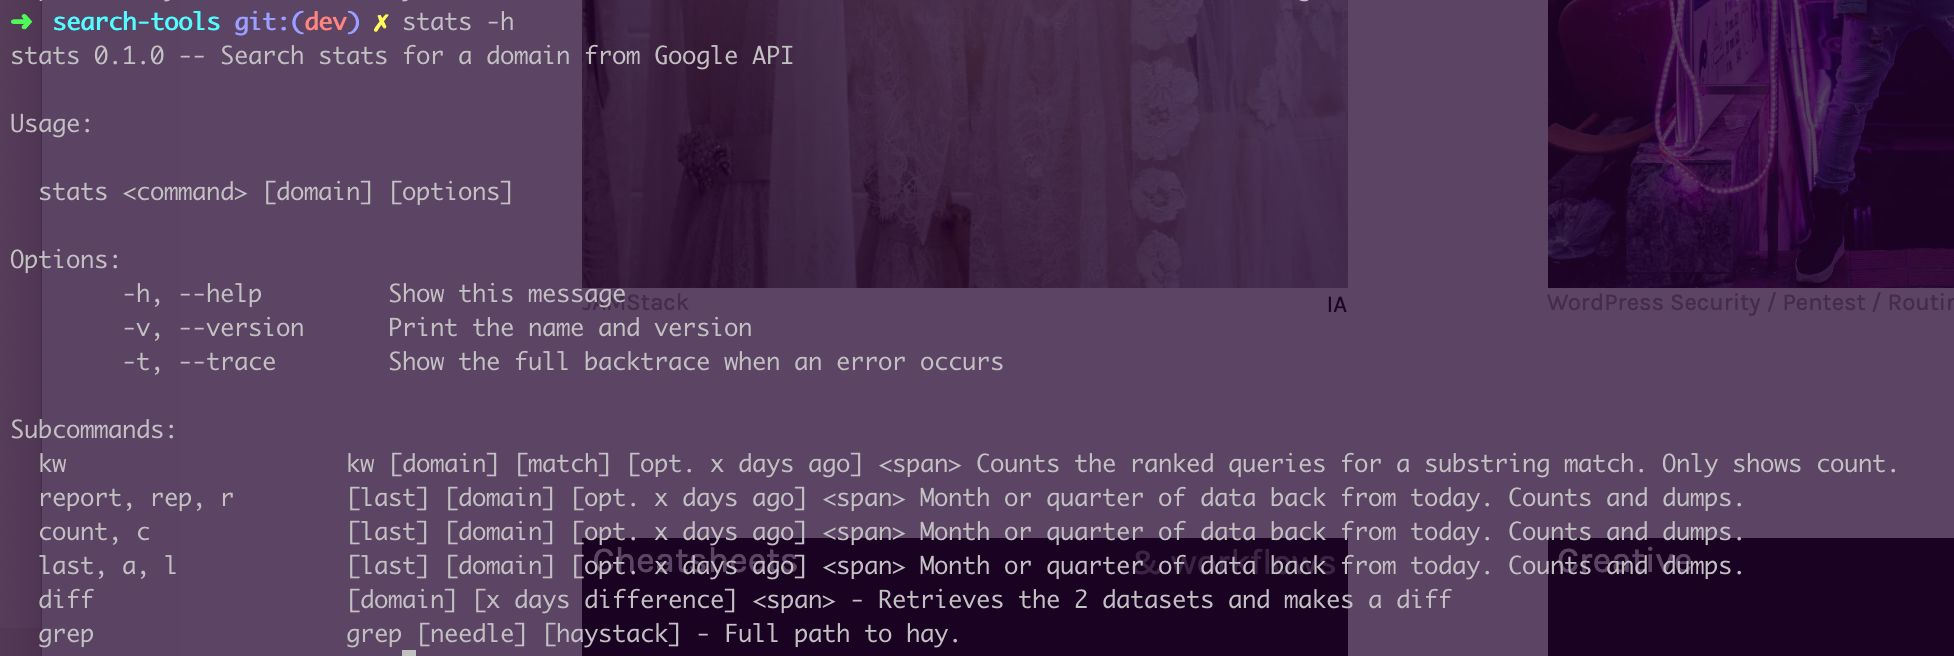 Granular SEO Lab: Making sense of Google API data for Search Console